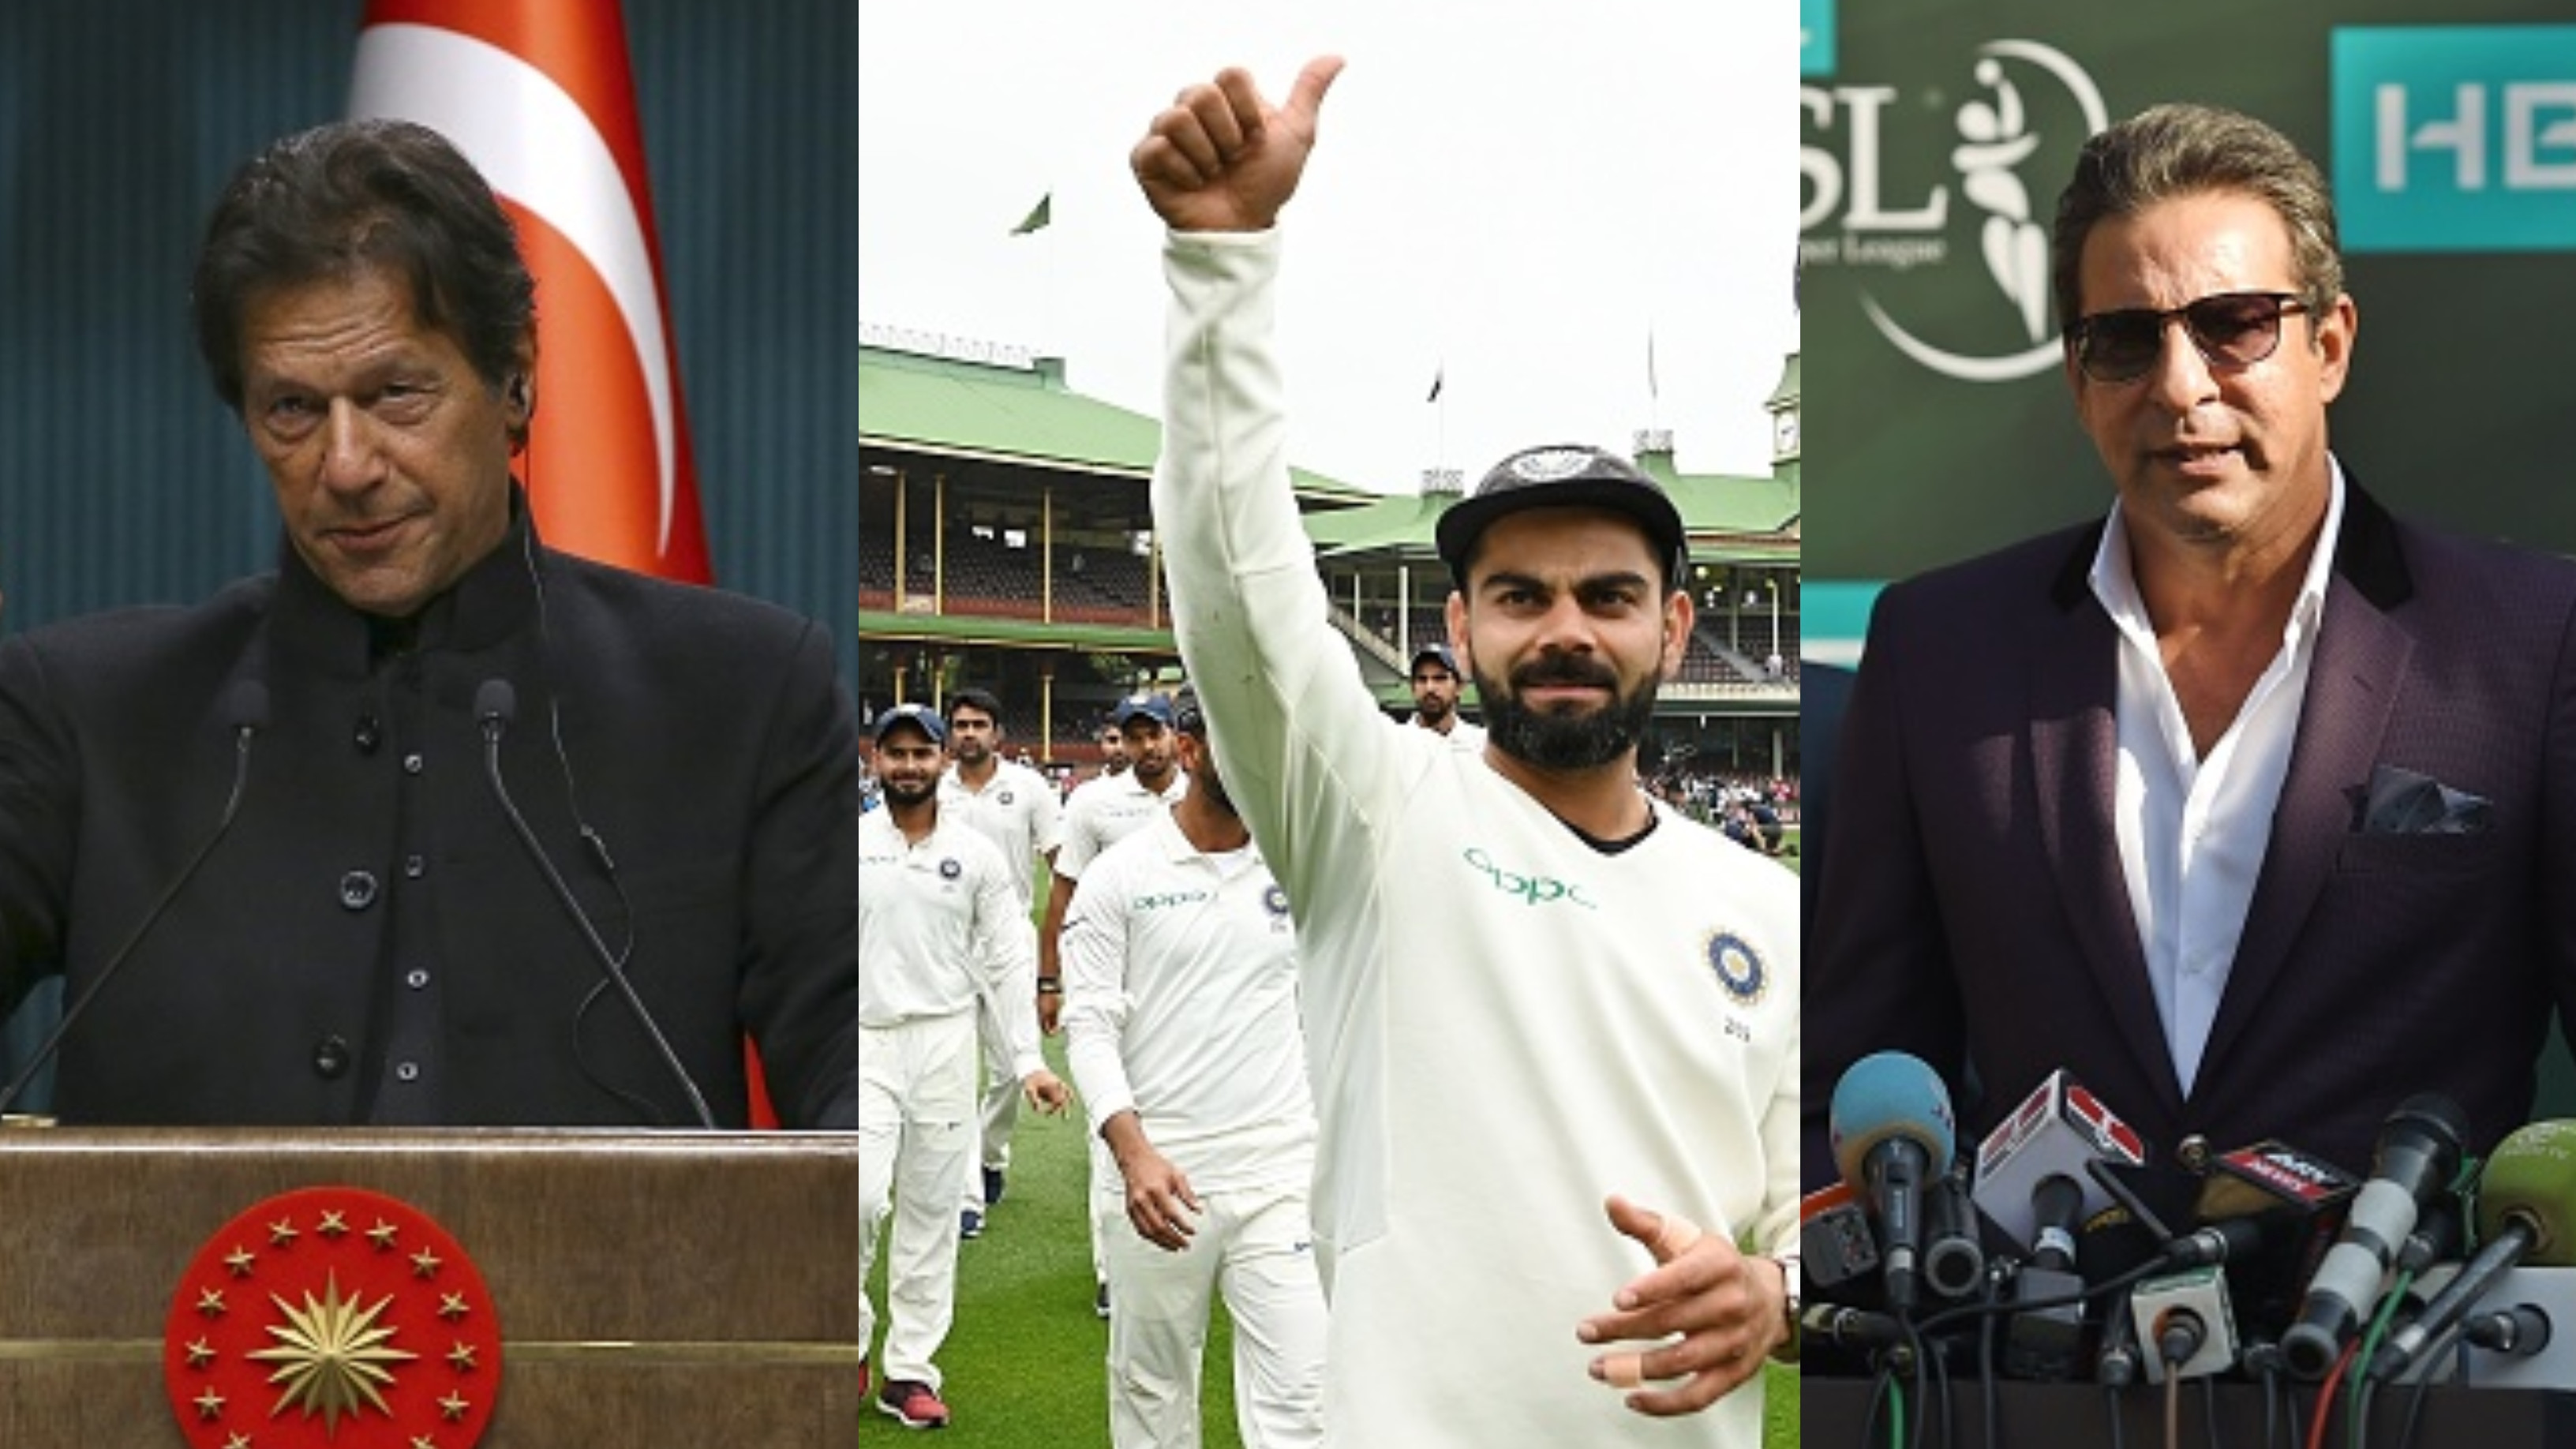 AUS v IND 2018-19: Pakistan cricket fraternity hails India's historic Test series win in Australia